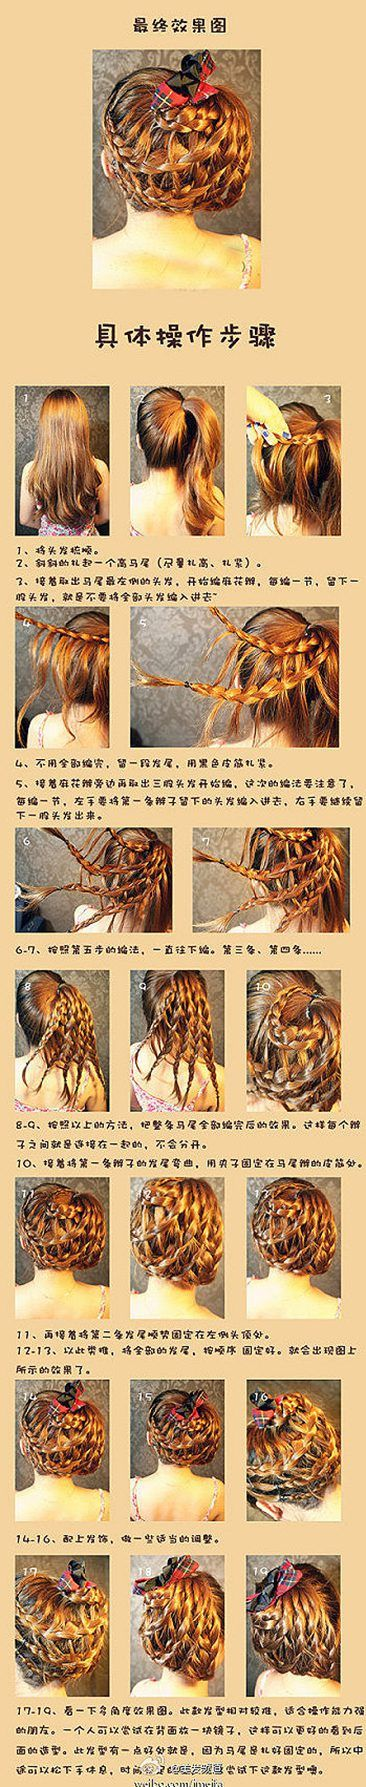 hair style hairstyles hairstyle